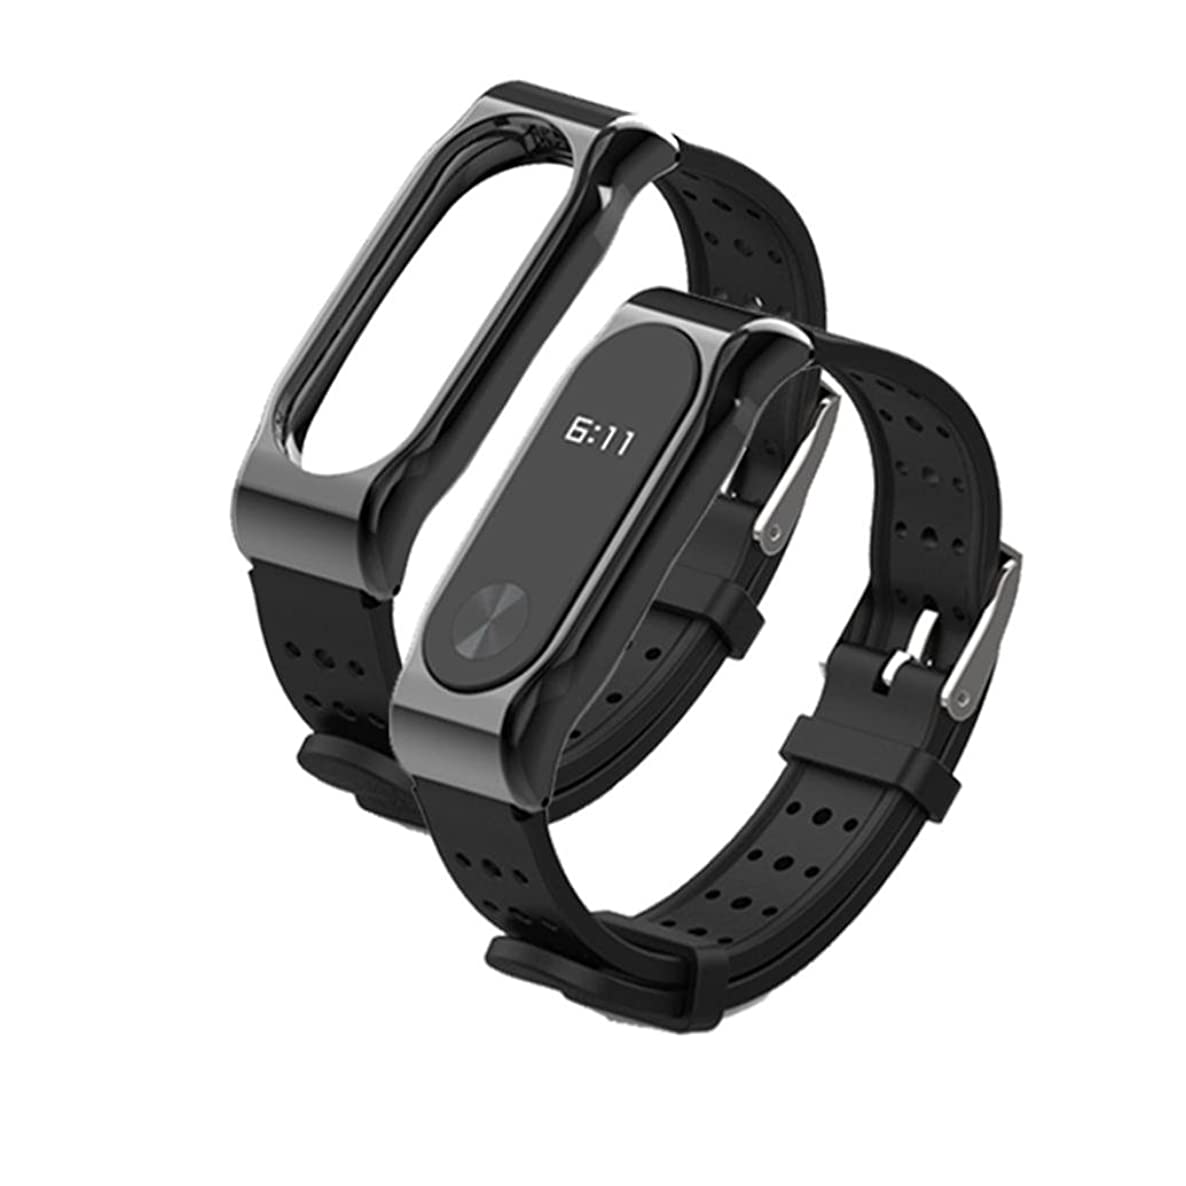 Kanzd Durable Replacement Silicom Waterproof Anti-Off Wristband Sports Bracelet For xiaomi MI Band 2